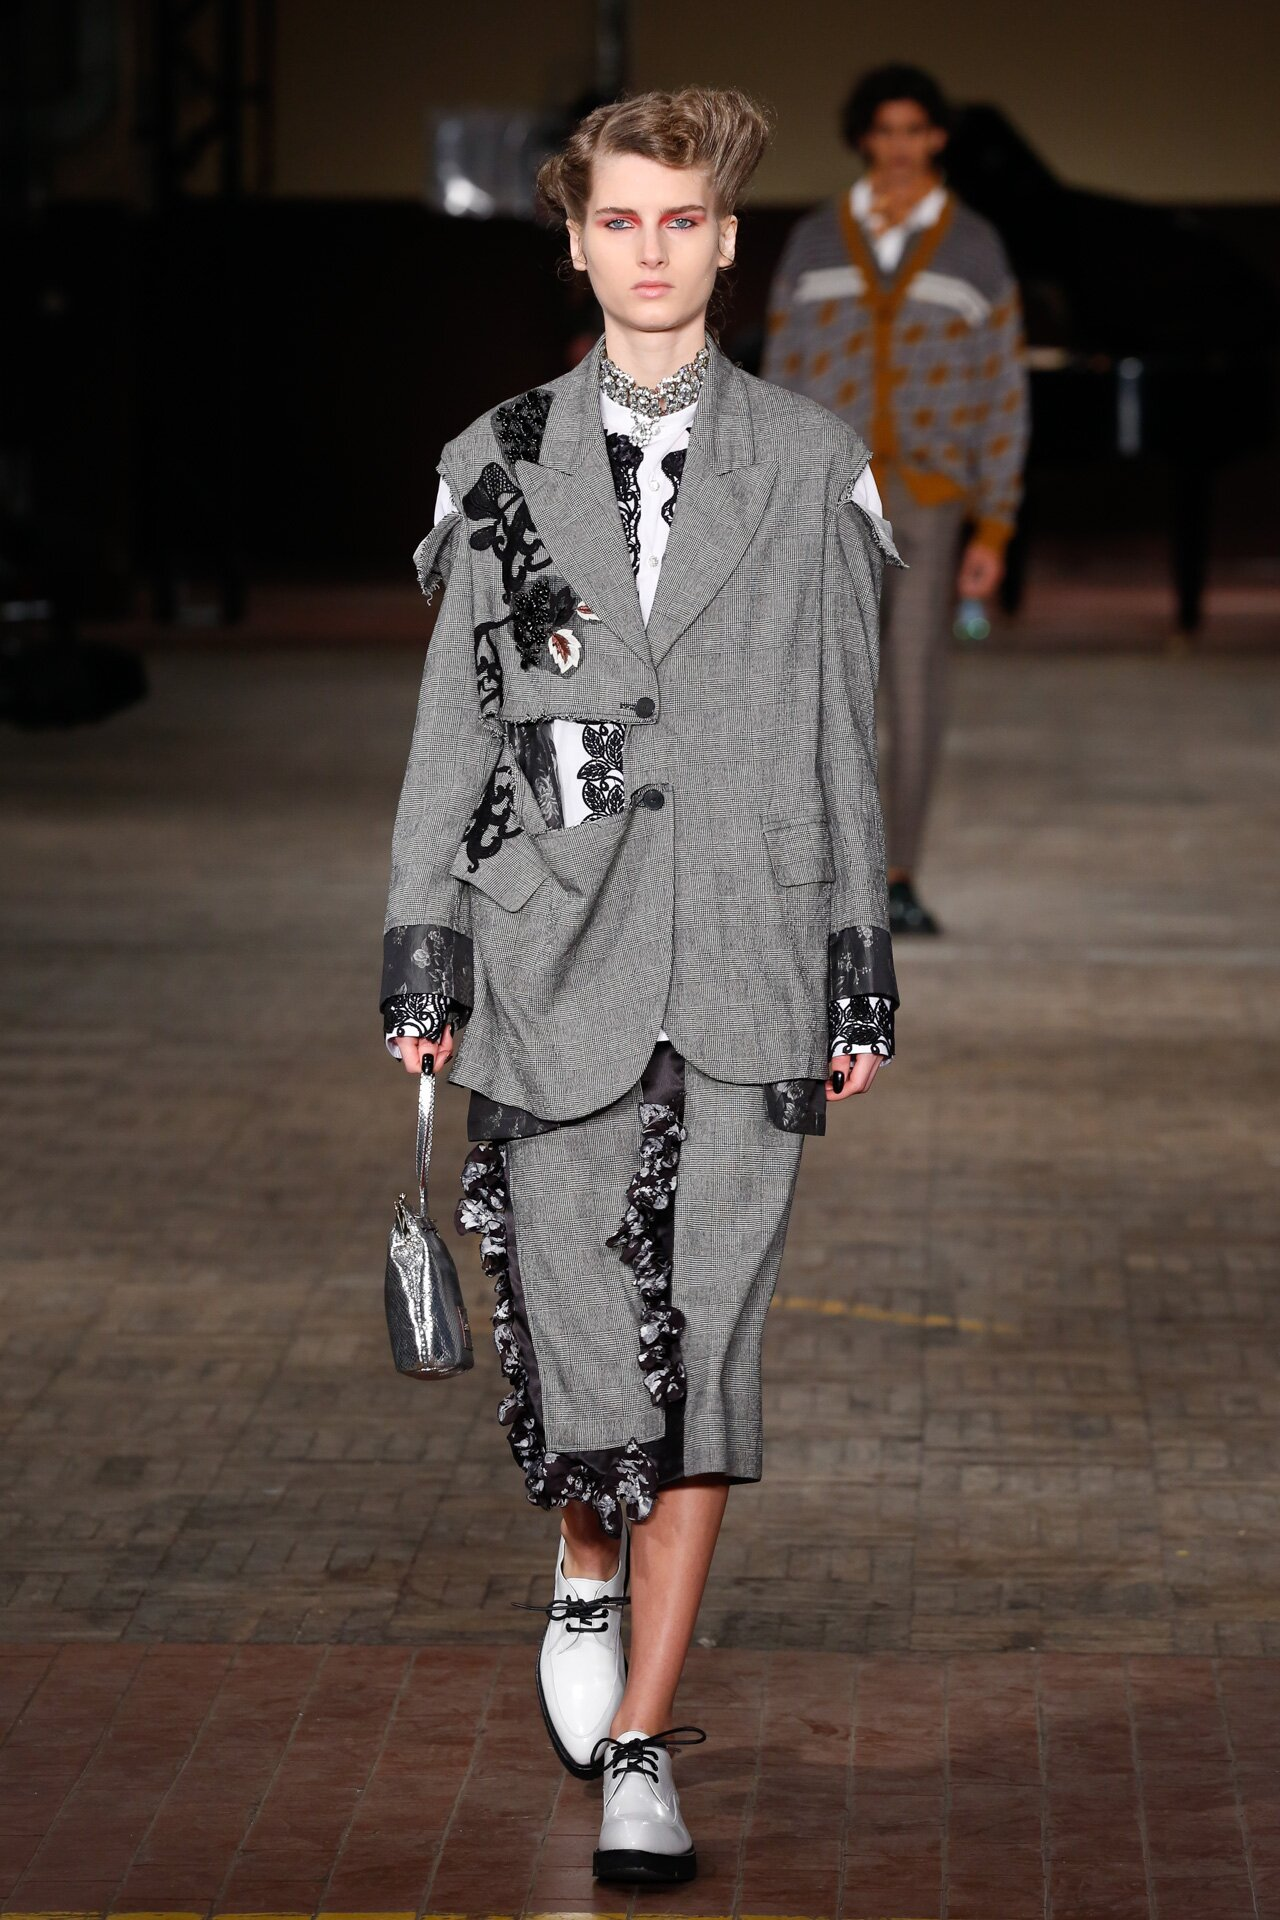 Antonio Marras Fall Winter 2018-19 Fashion Show Look 36